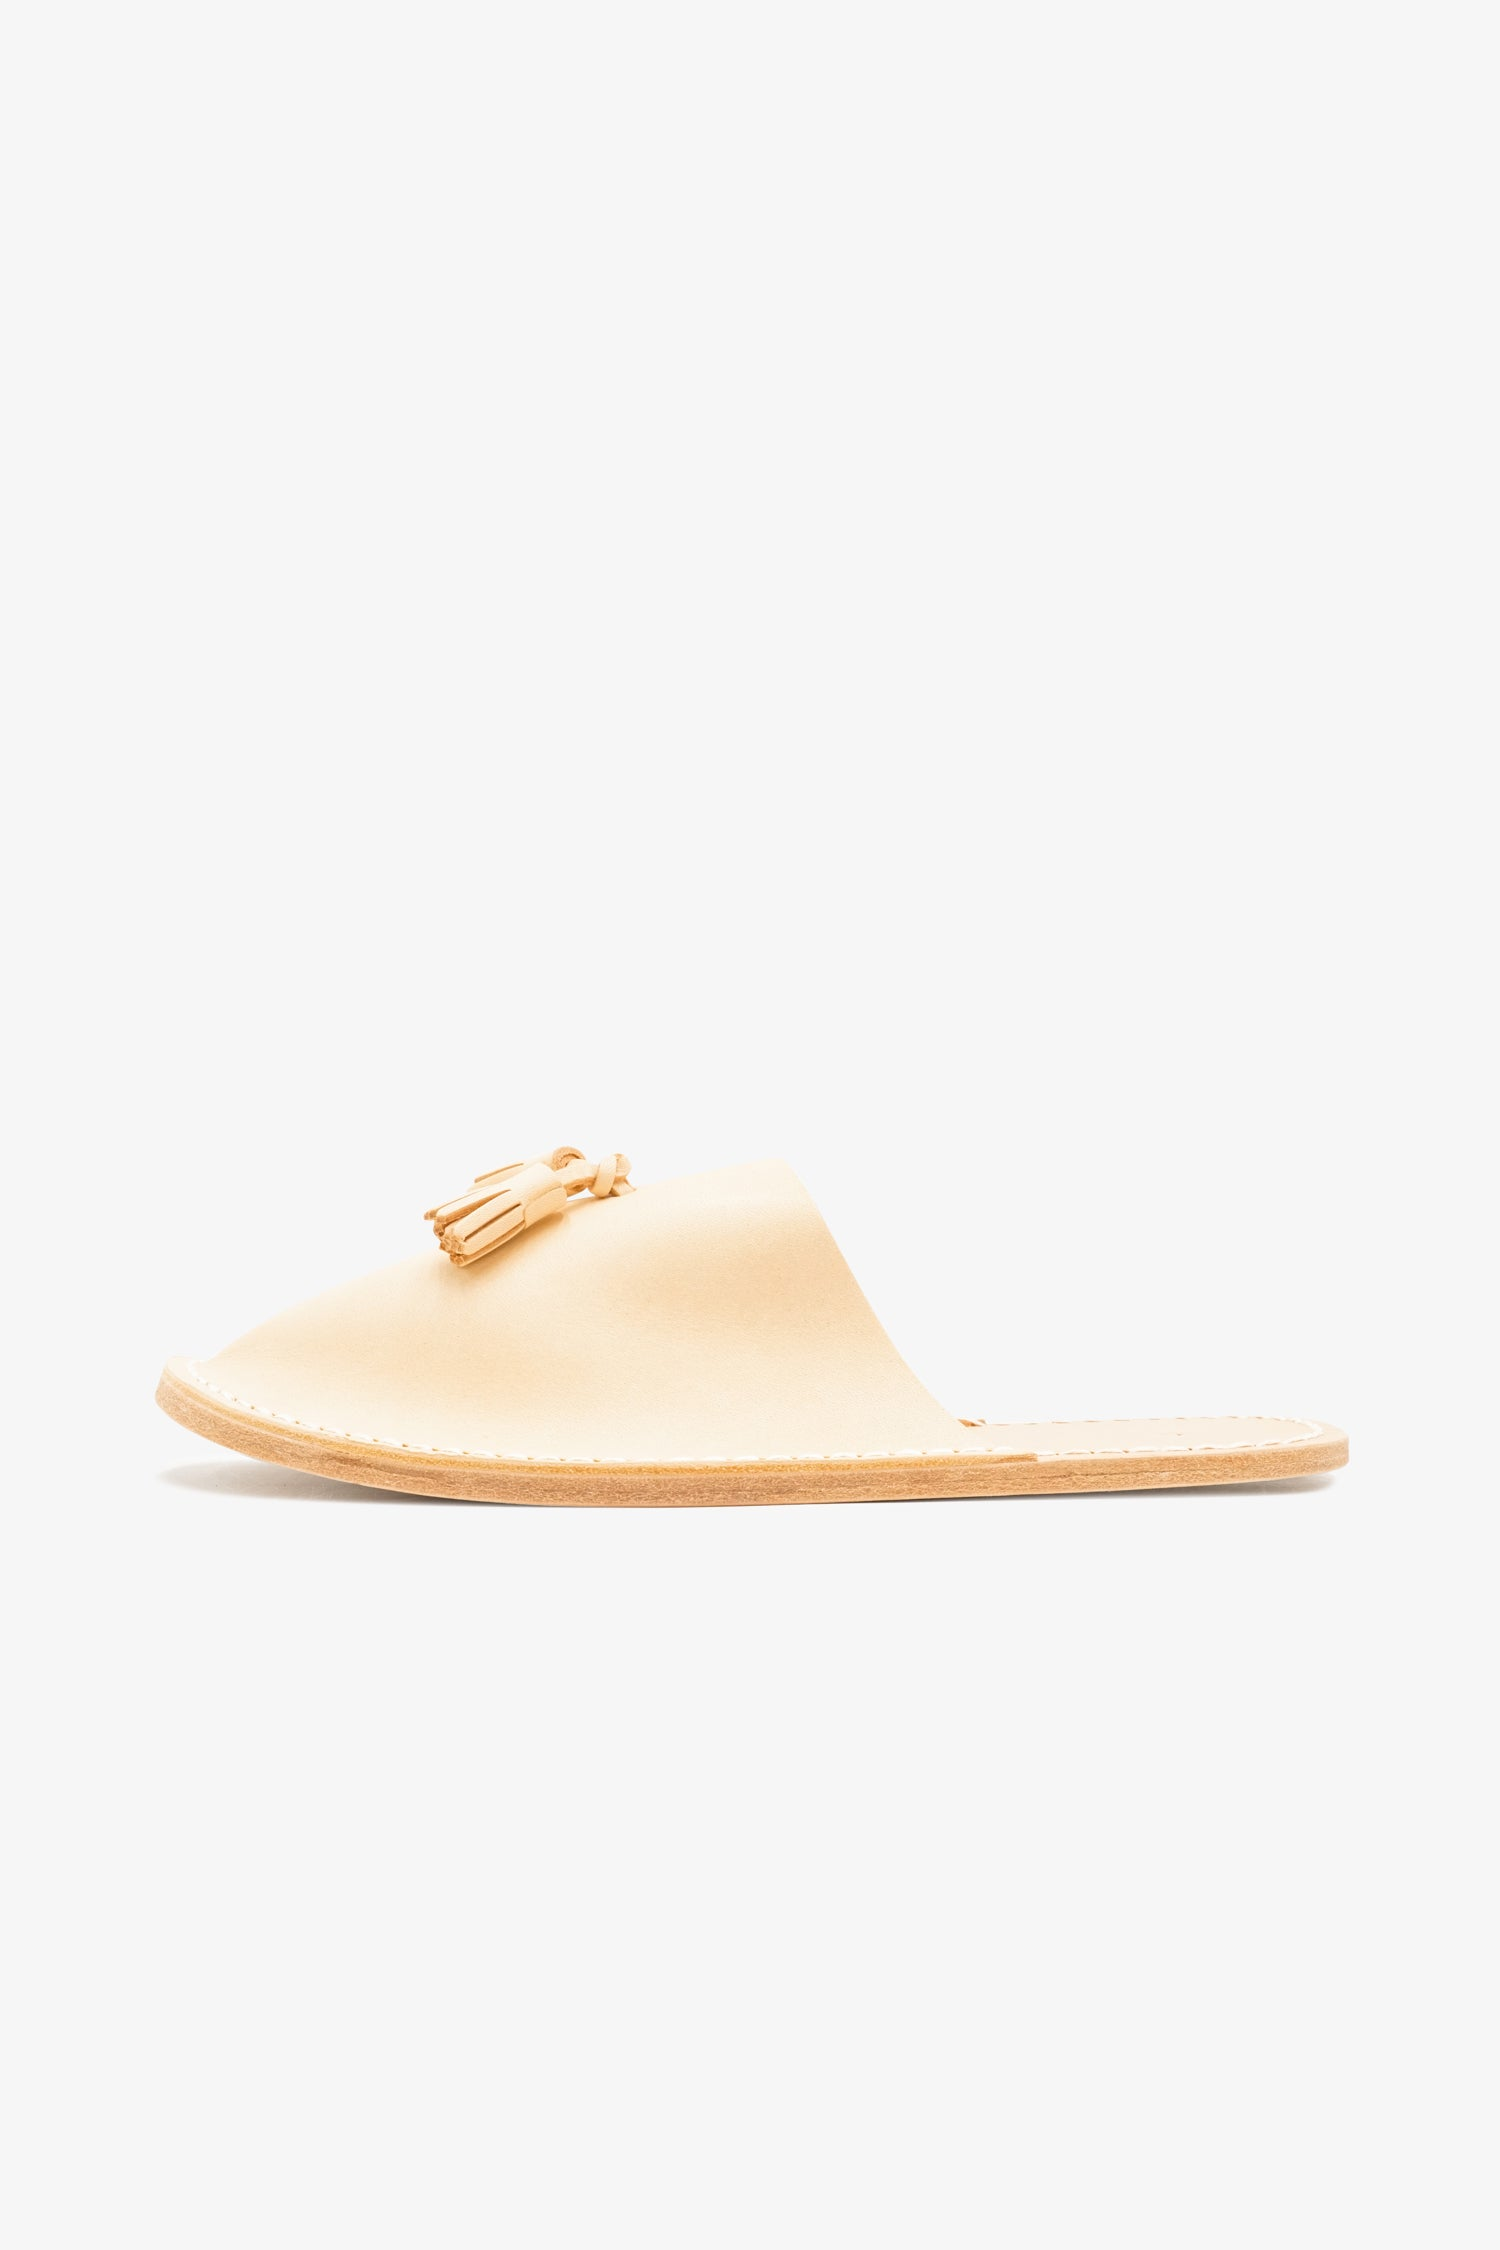 Selectshop FRAME - HENDER SCHEME Slipper Natural Footwear Dubai